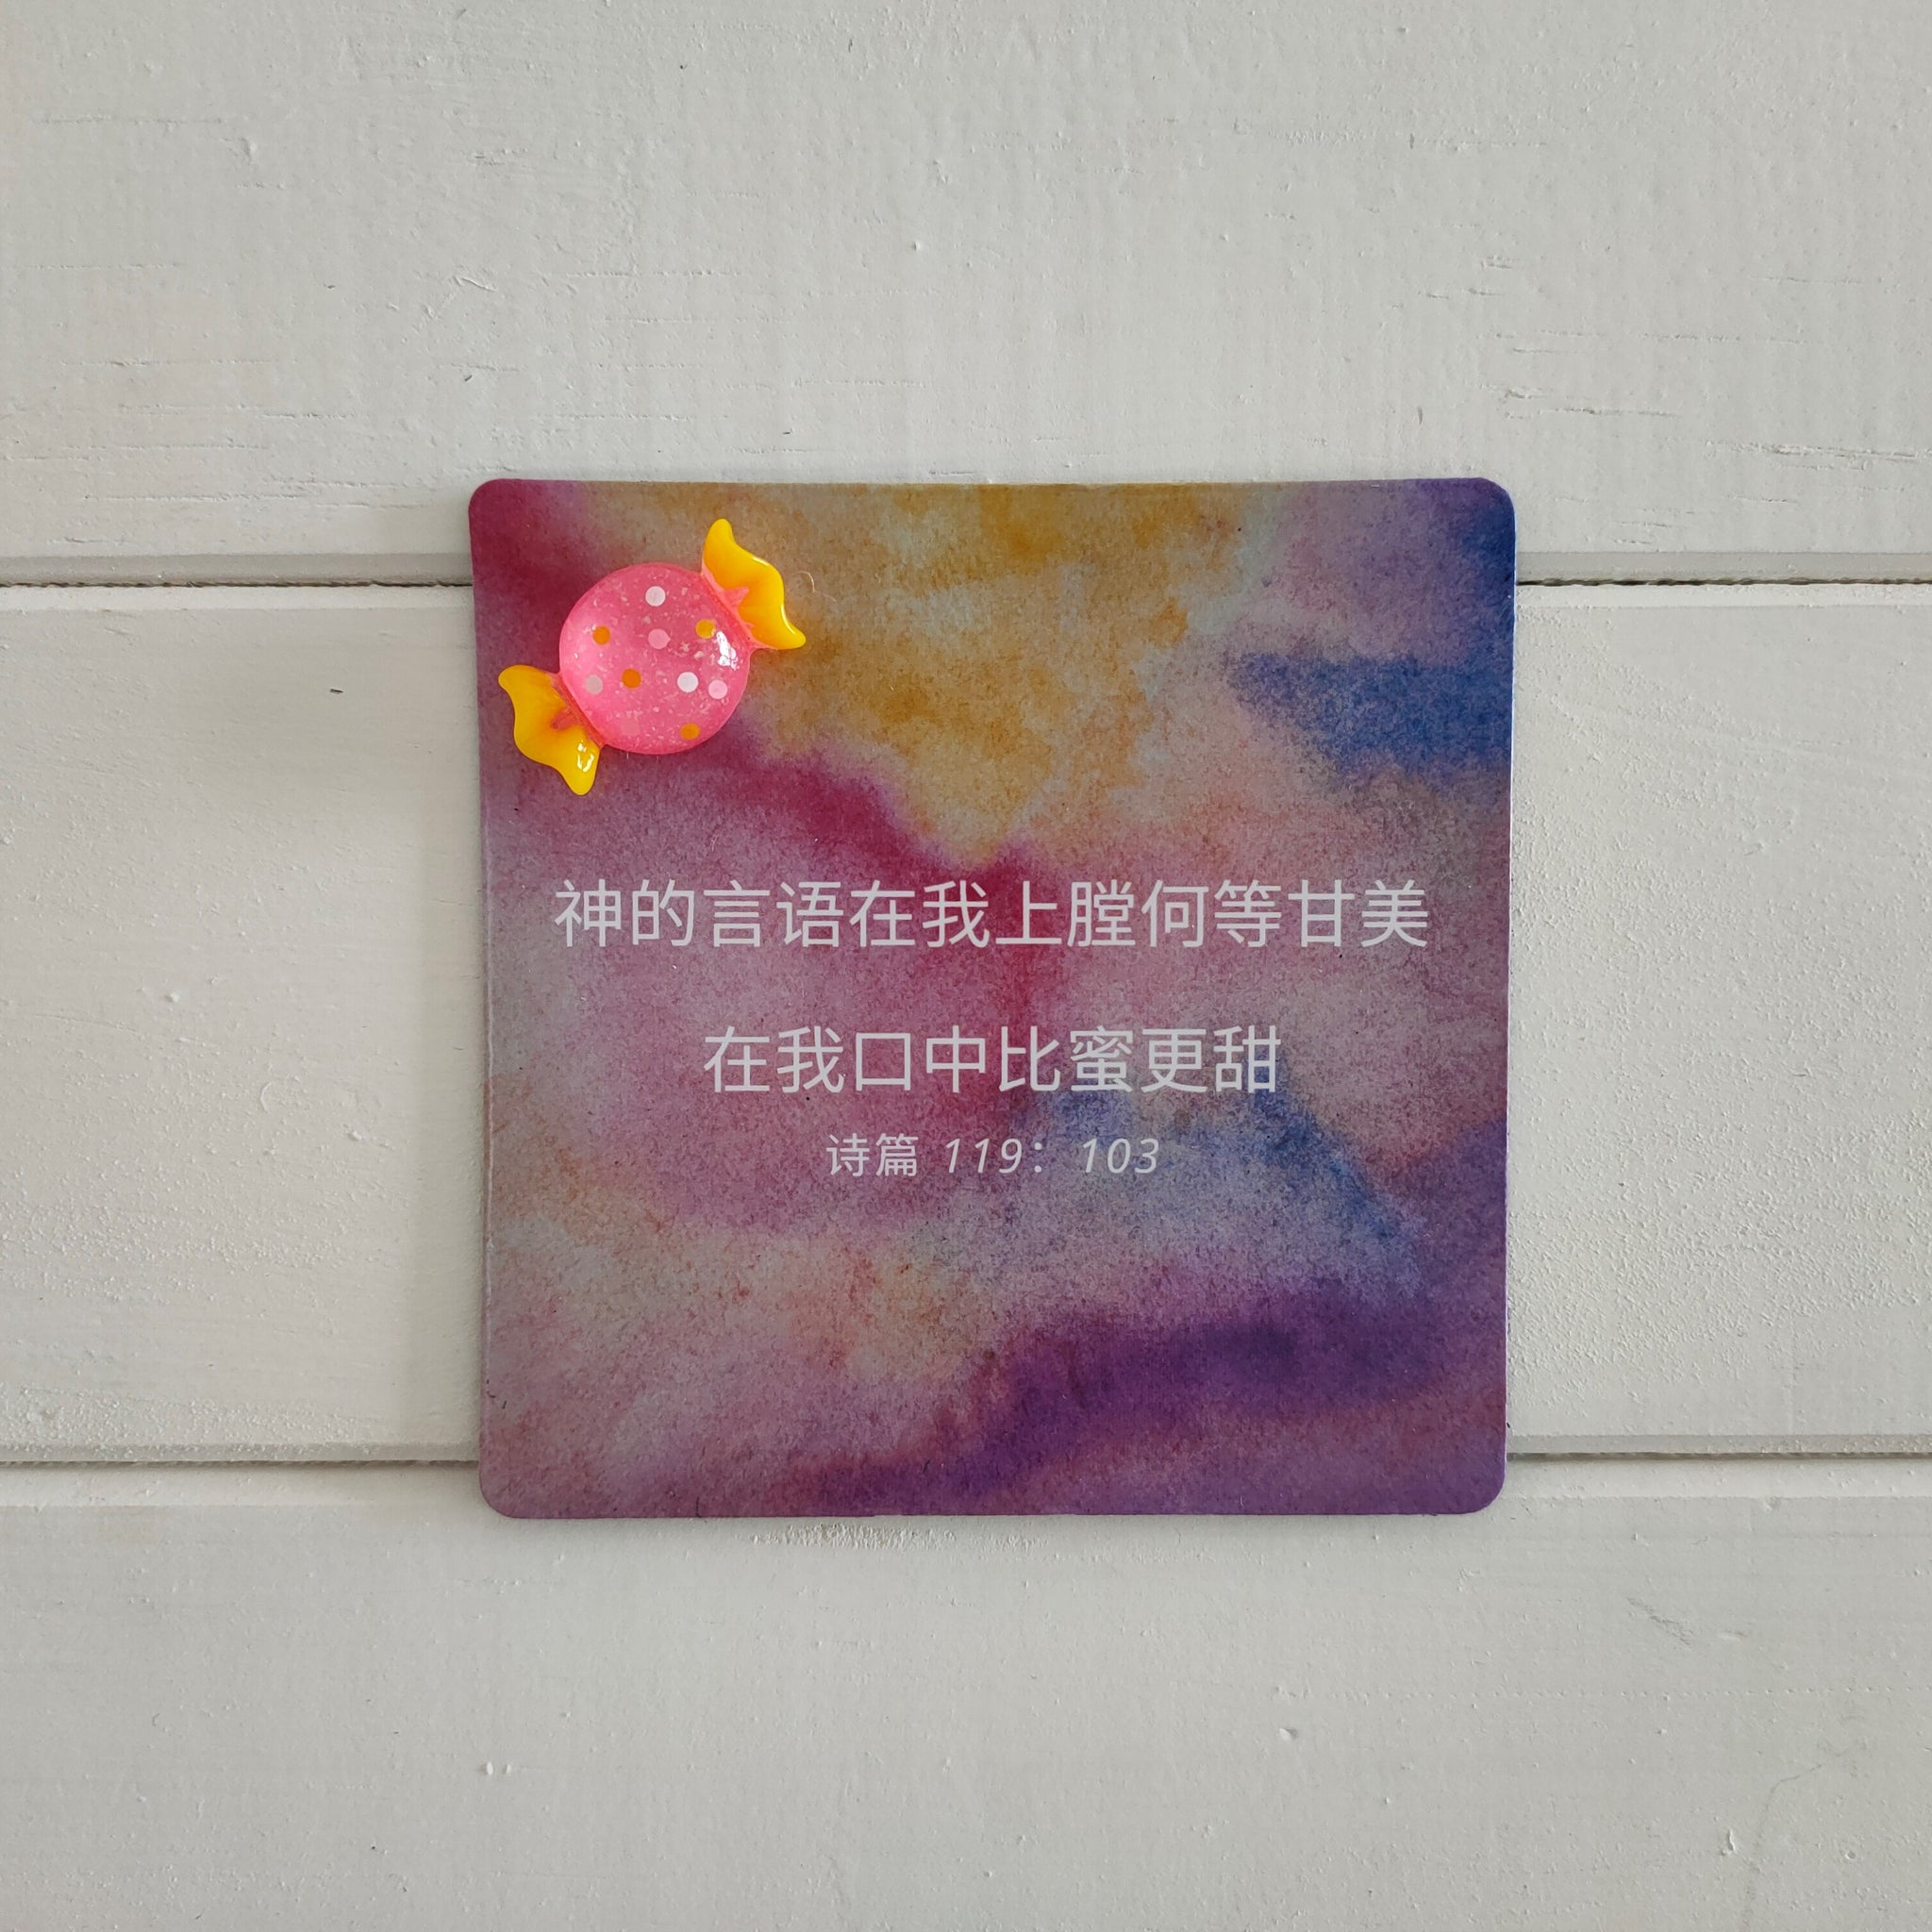 Fridge Magnet-Card ~ 神的言语在我上膛何等甘甜